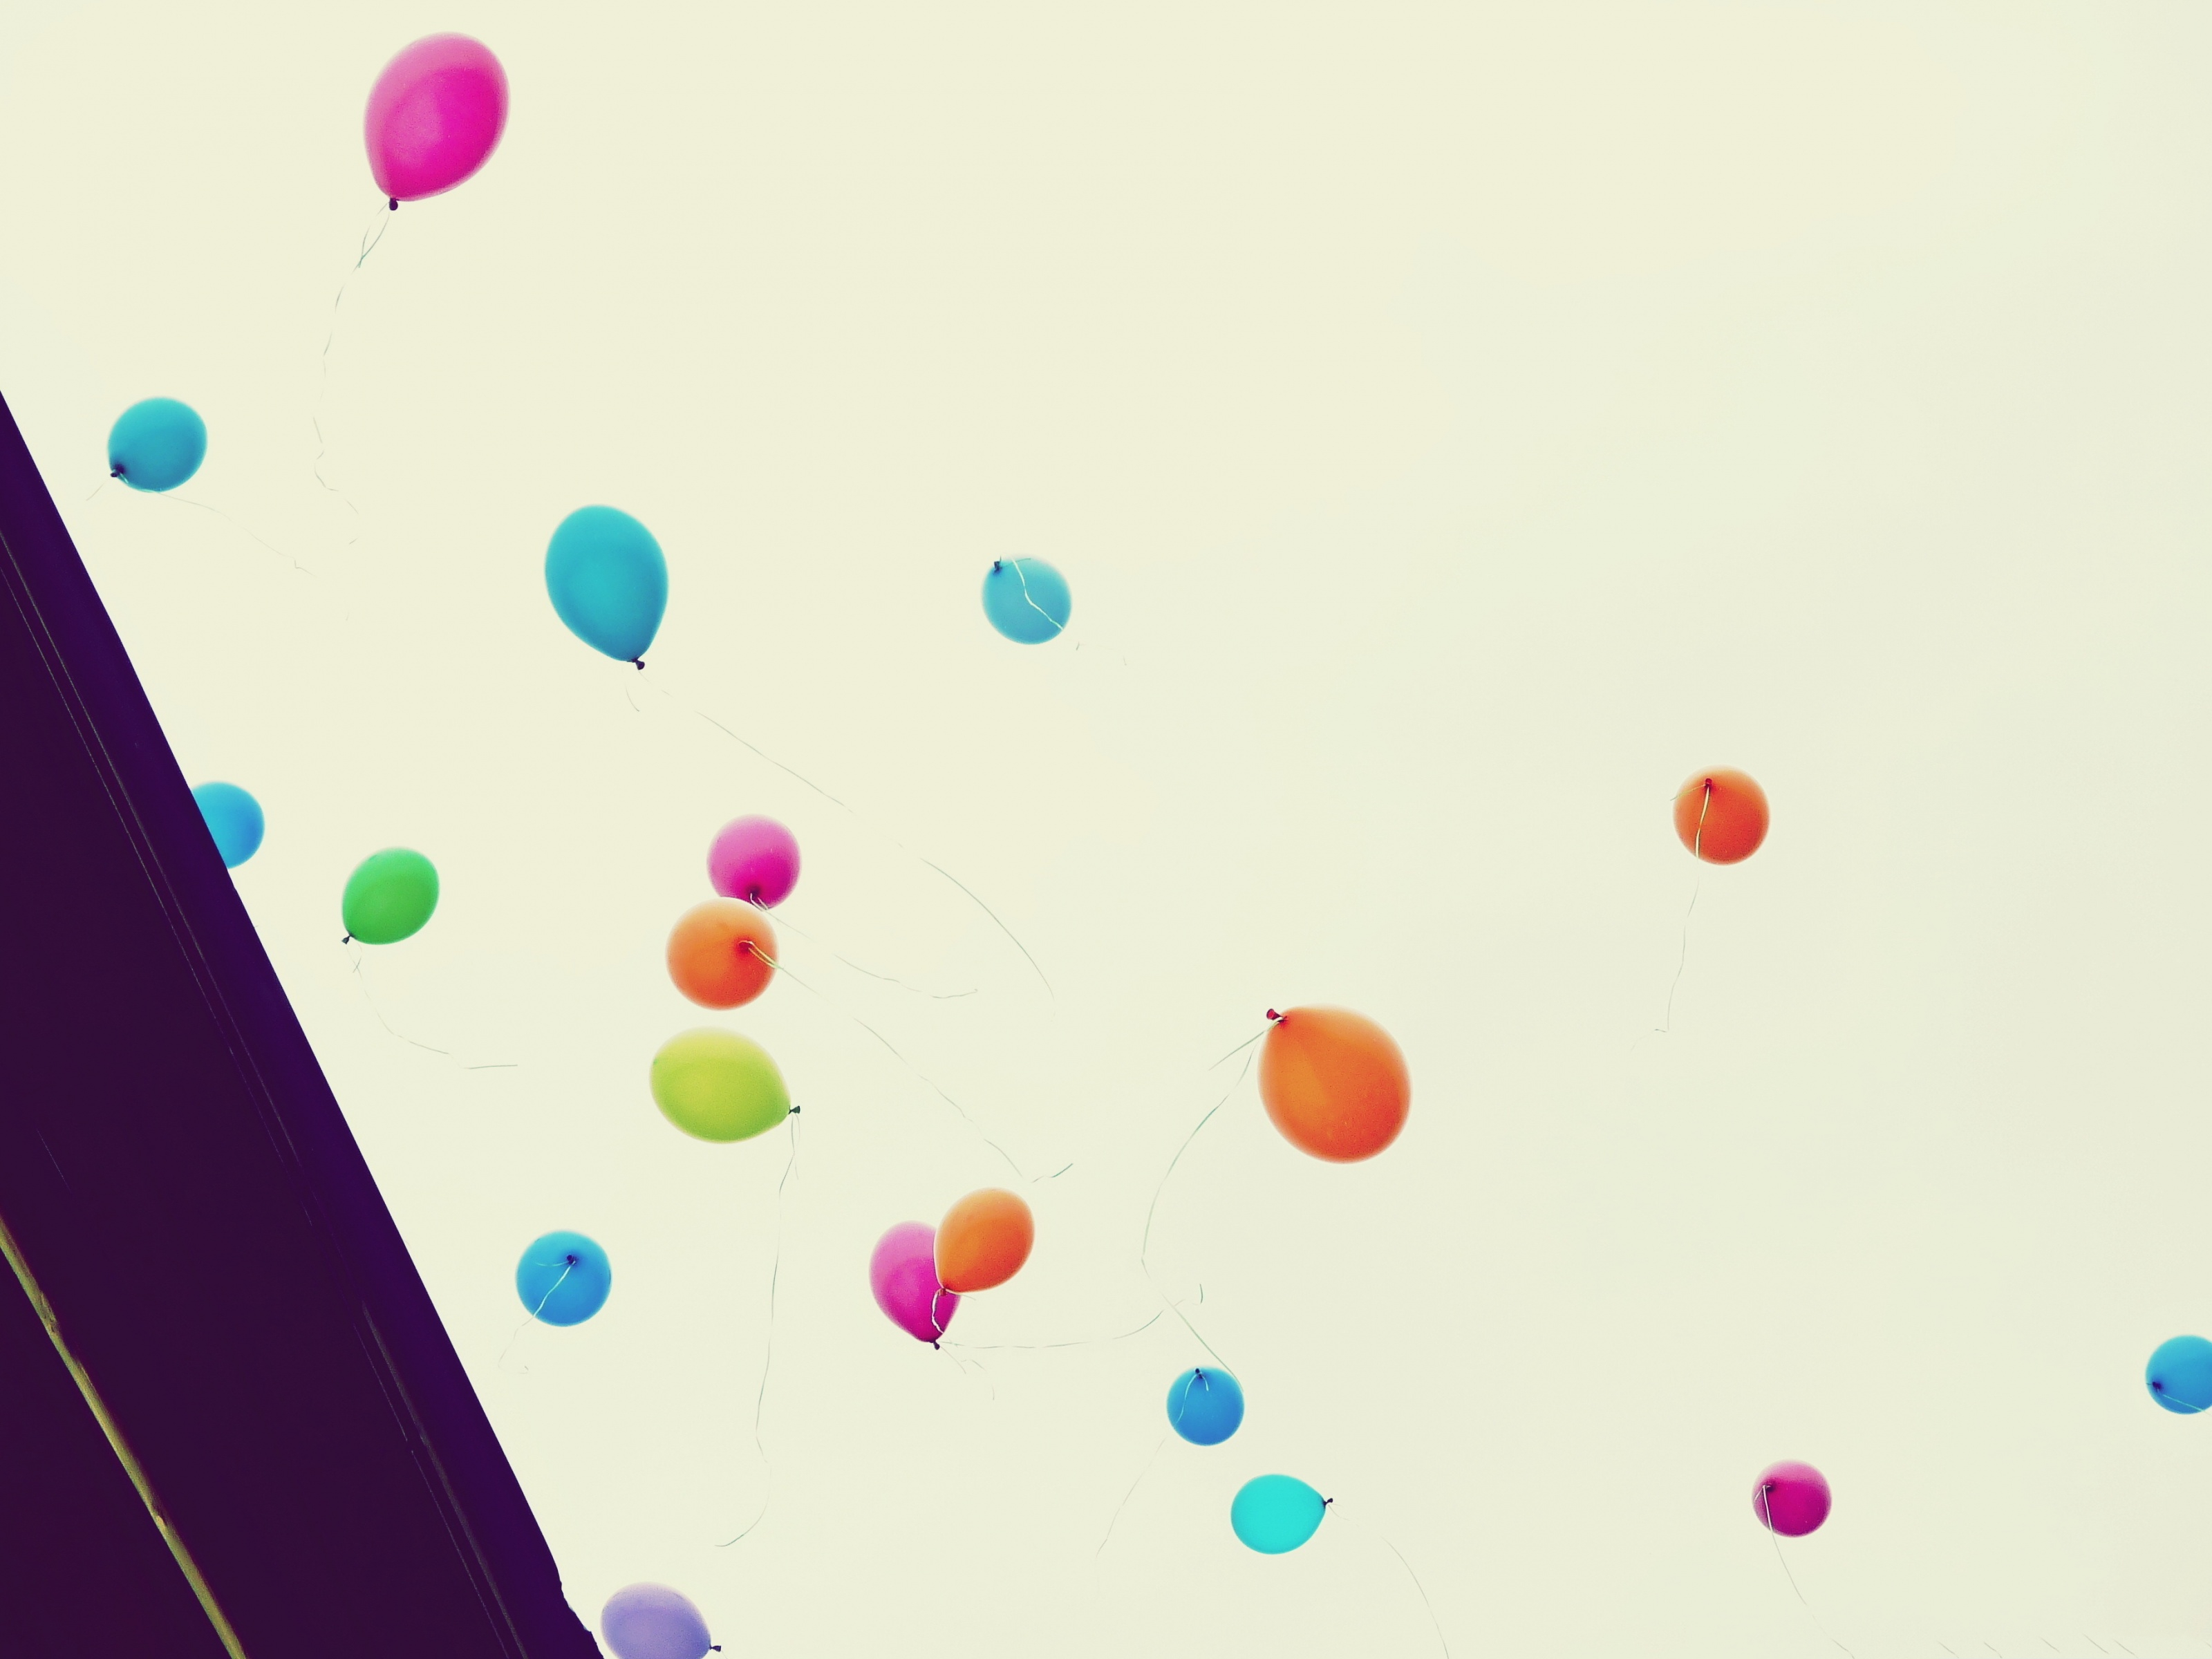 click to free download the wallpaper--High Resolution Wallpapers, Colorful Balloons in the Fly, Take Your Dreams with Them! 3200X2400 free wallpaper download